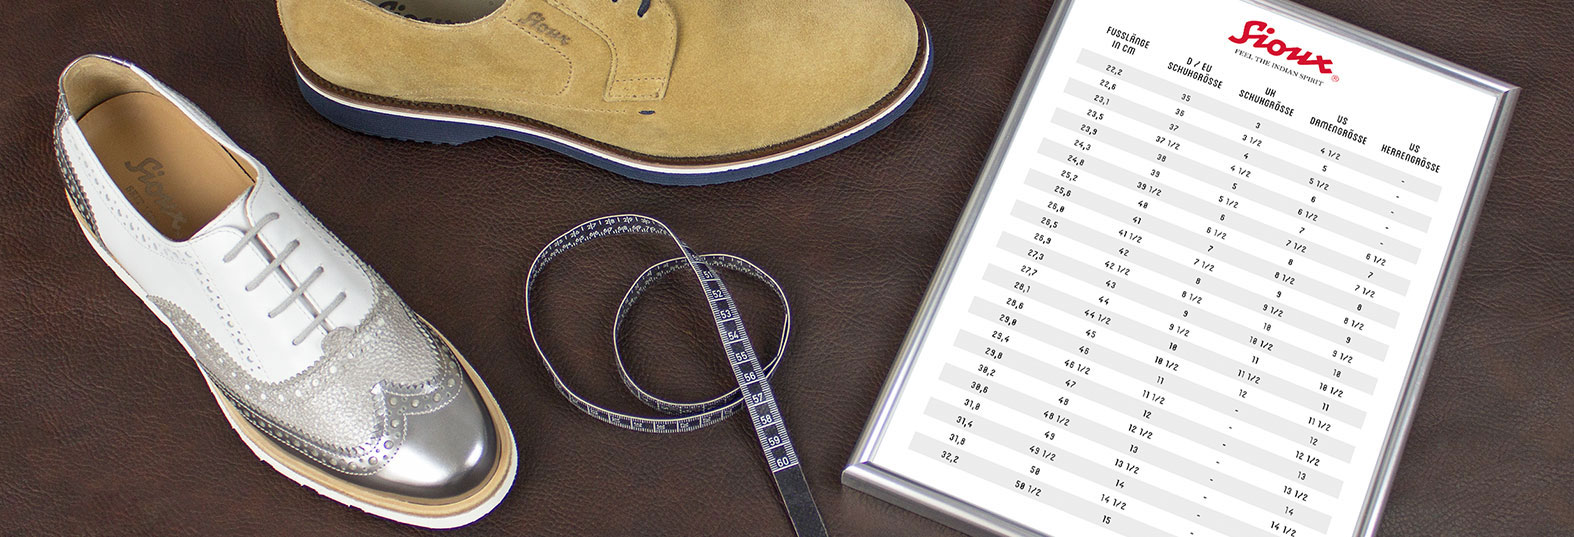 ca21f0895869a Want to know more? Below, we explain the history, origin and development of  all the essential shoe size measurement systems.